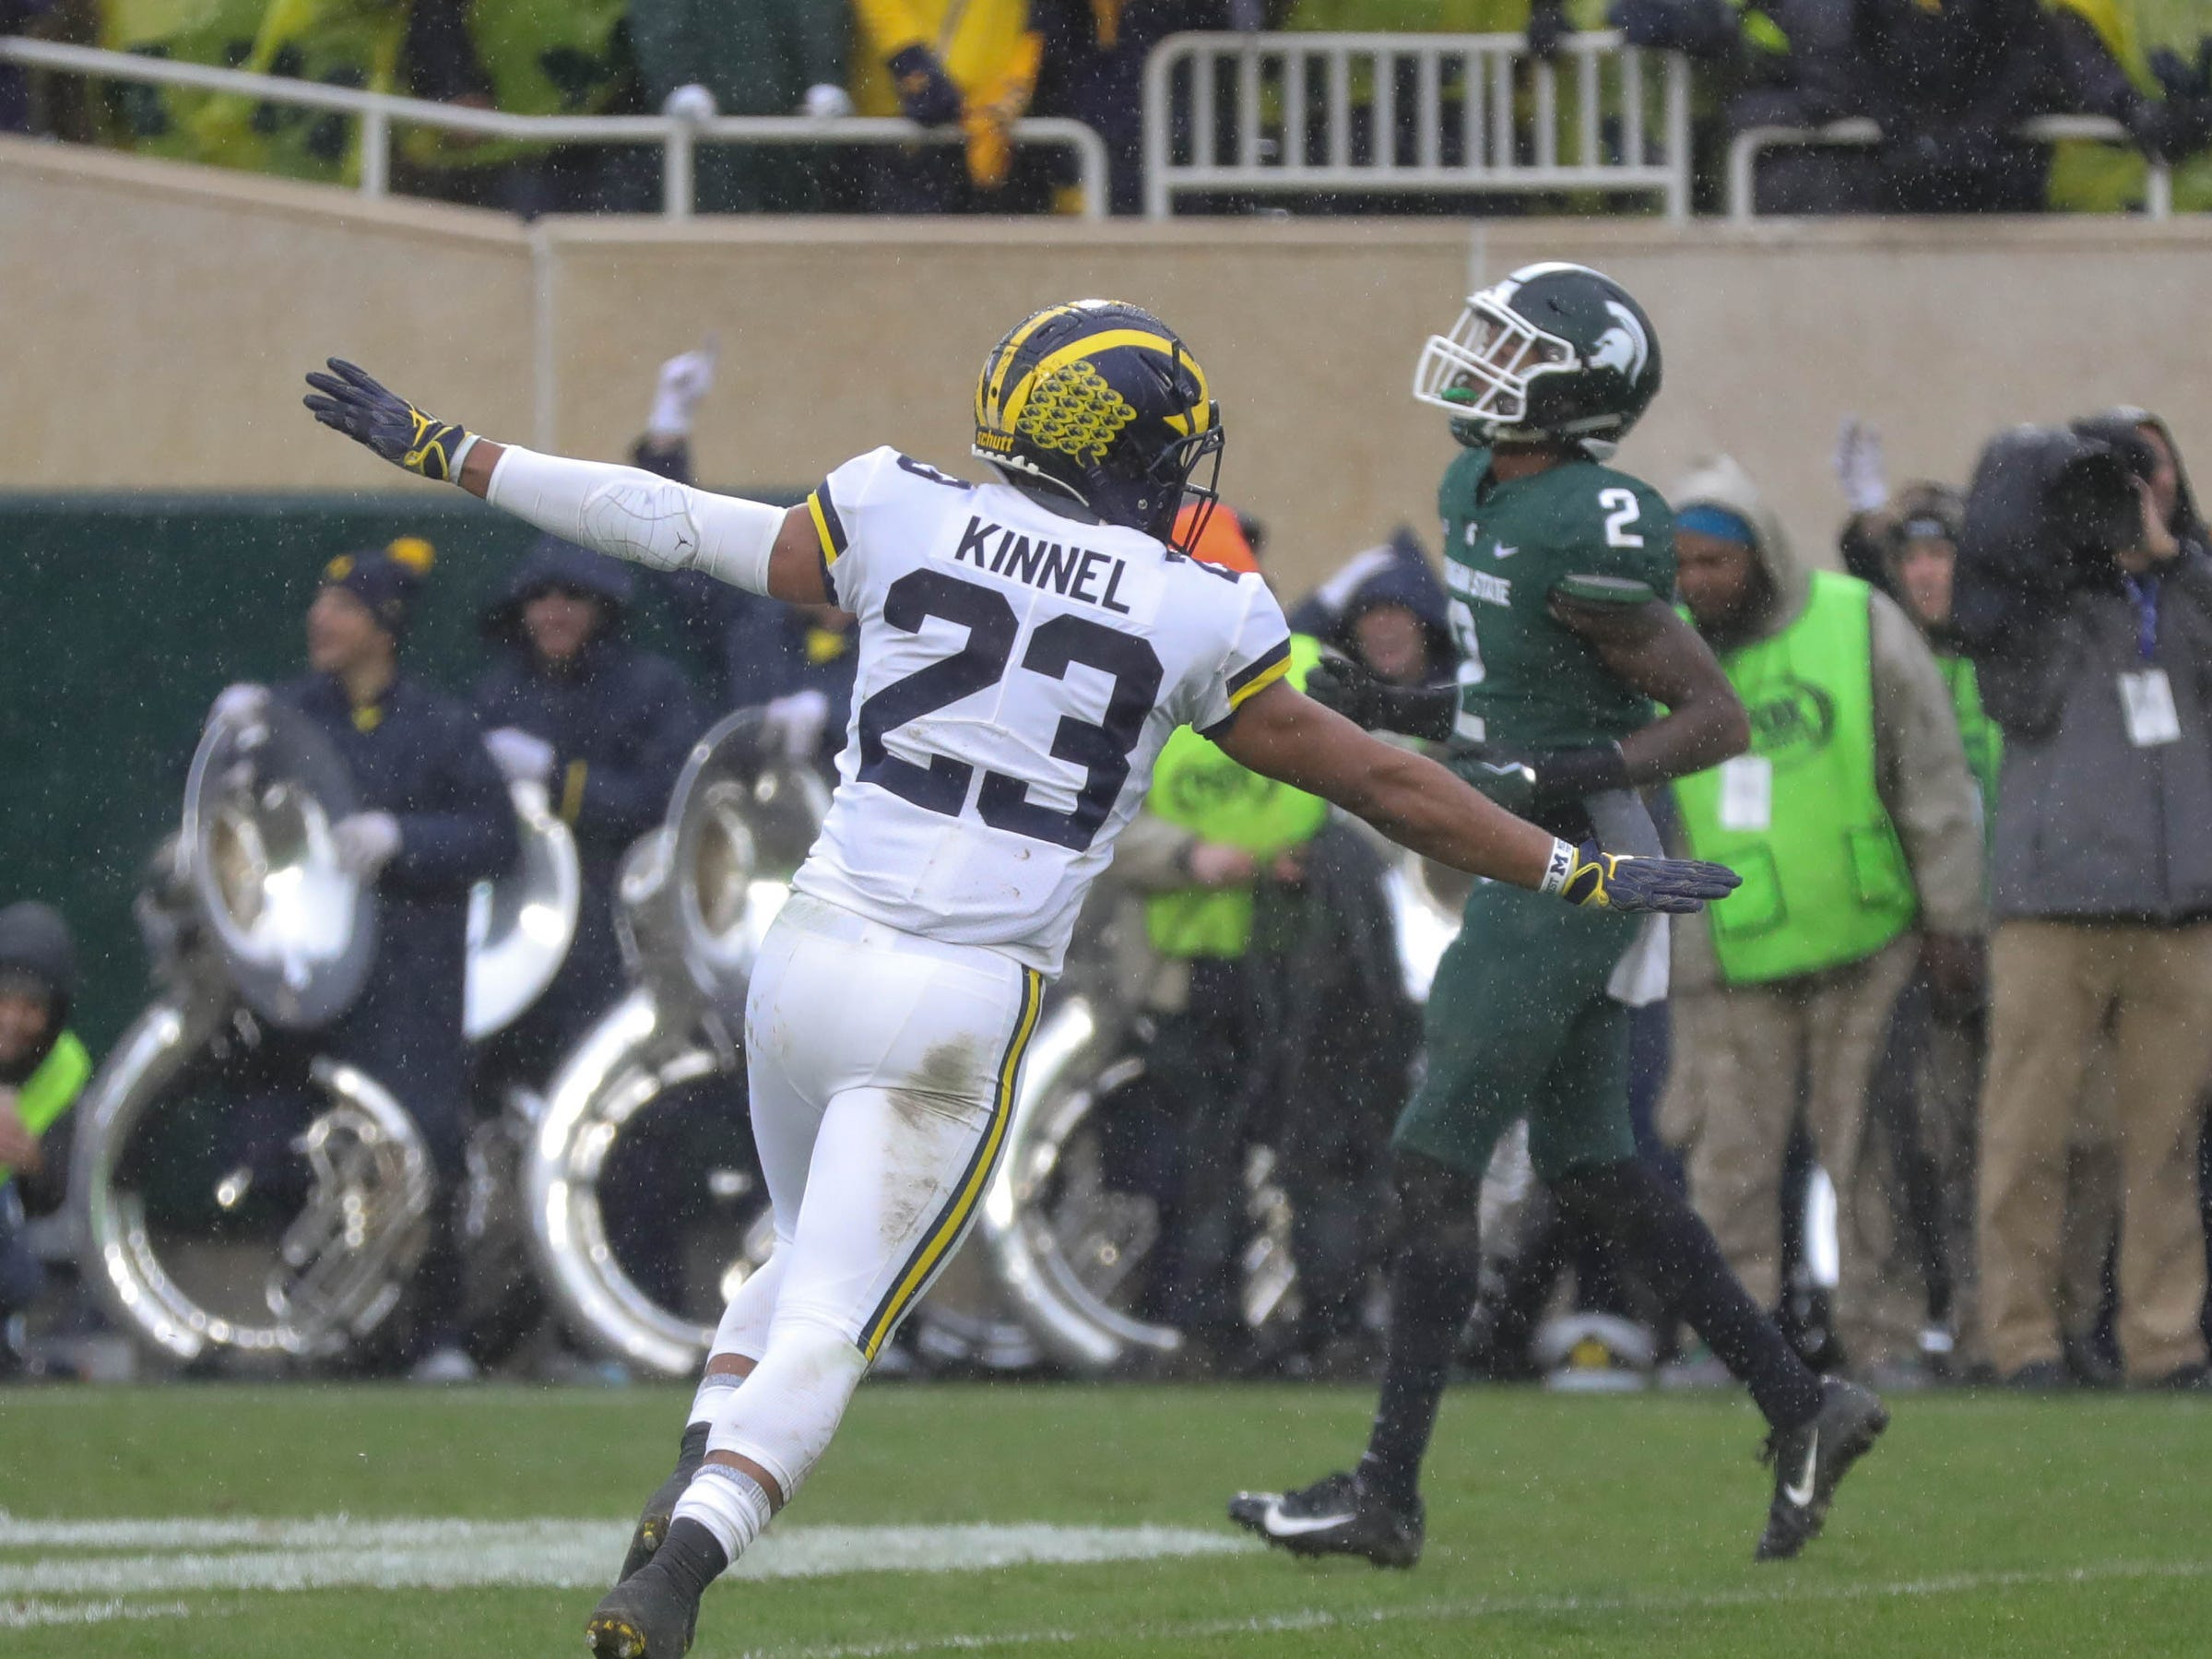 Michigan's Tyree Kinnel celebrates the 21-7 win over Michigan State, Saturday, Oct. 20, 2018 at Spartan Stadium in East Lansing.